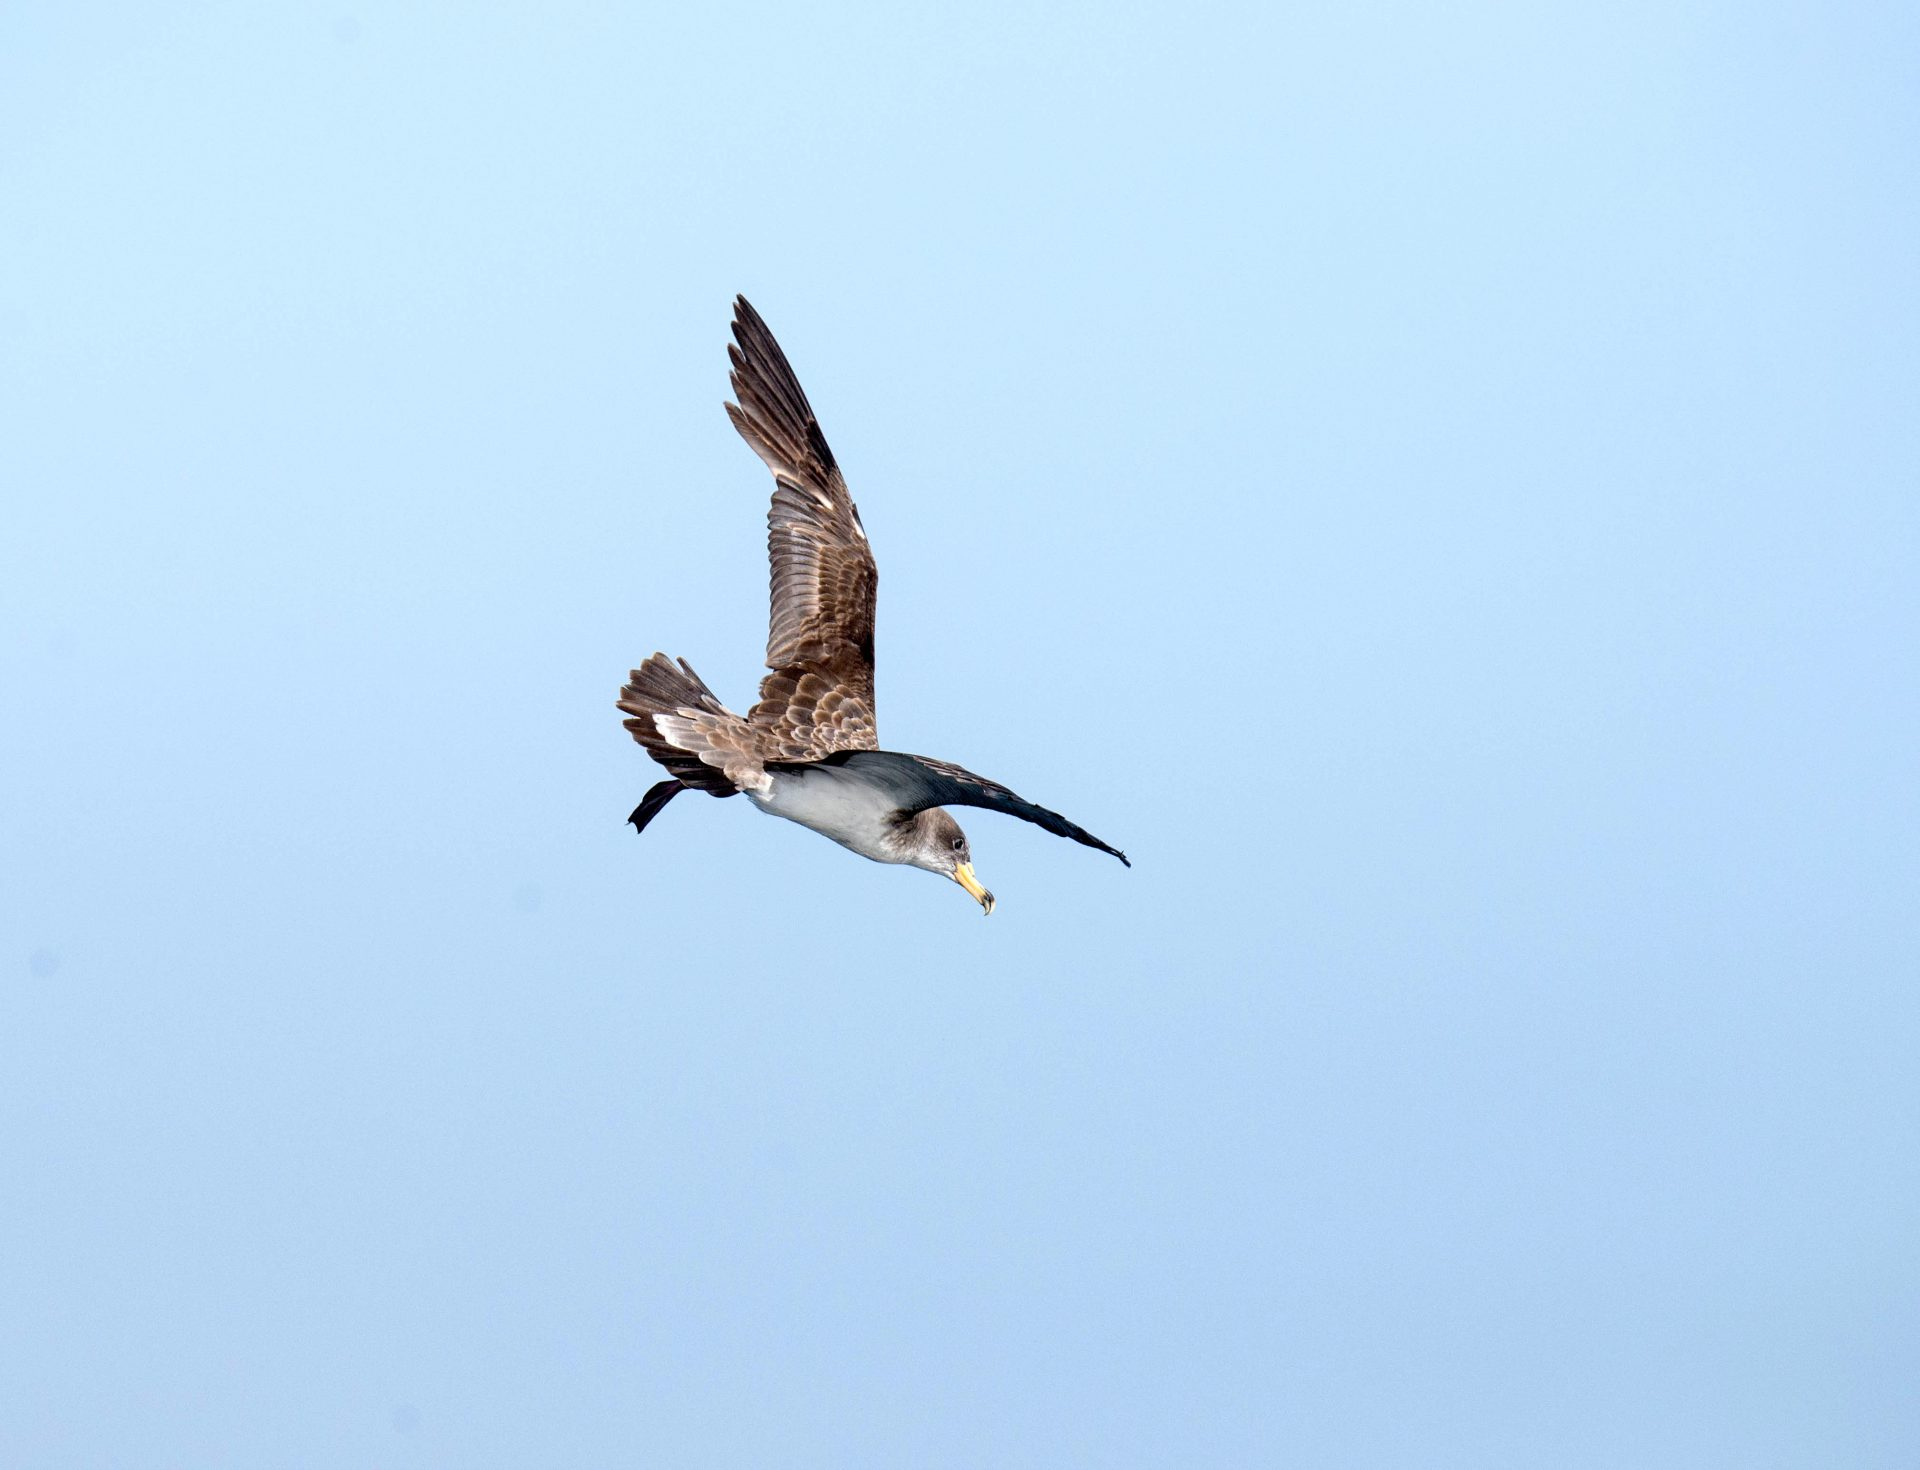 Cory's Shearwater flying